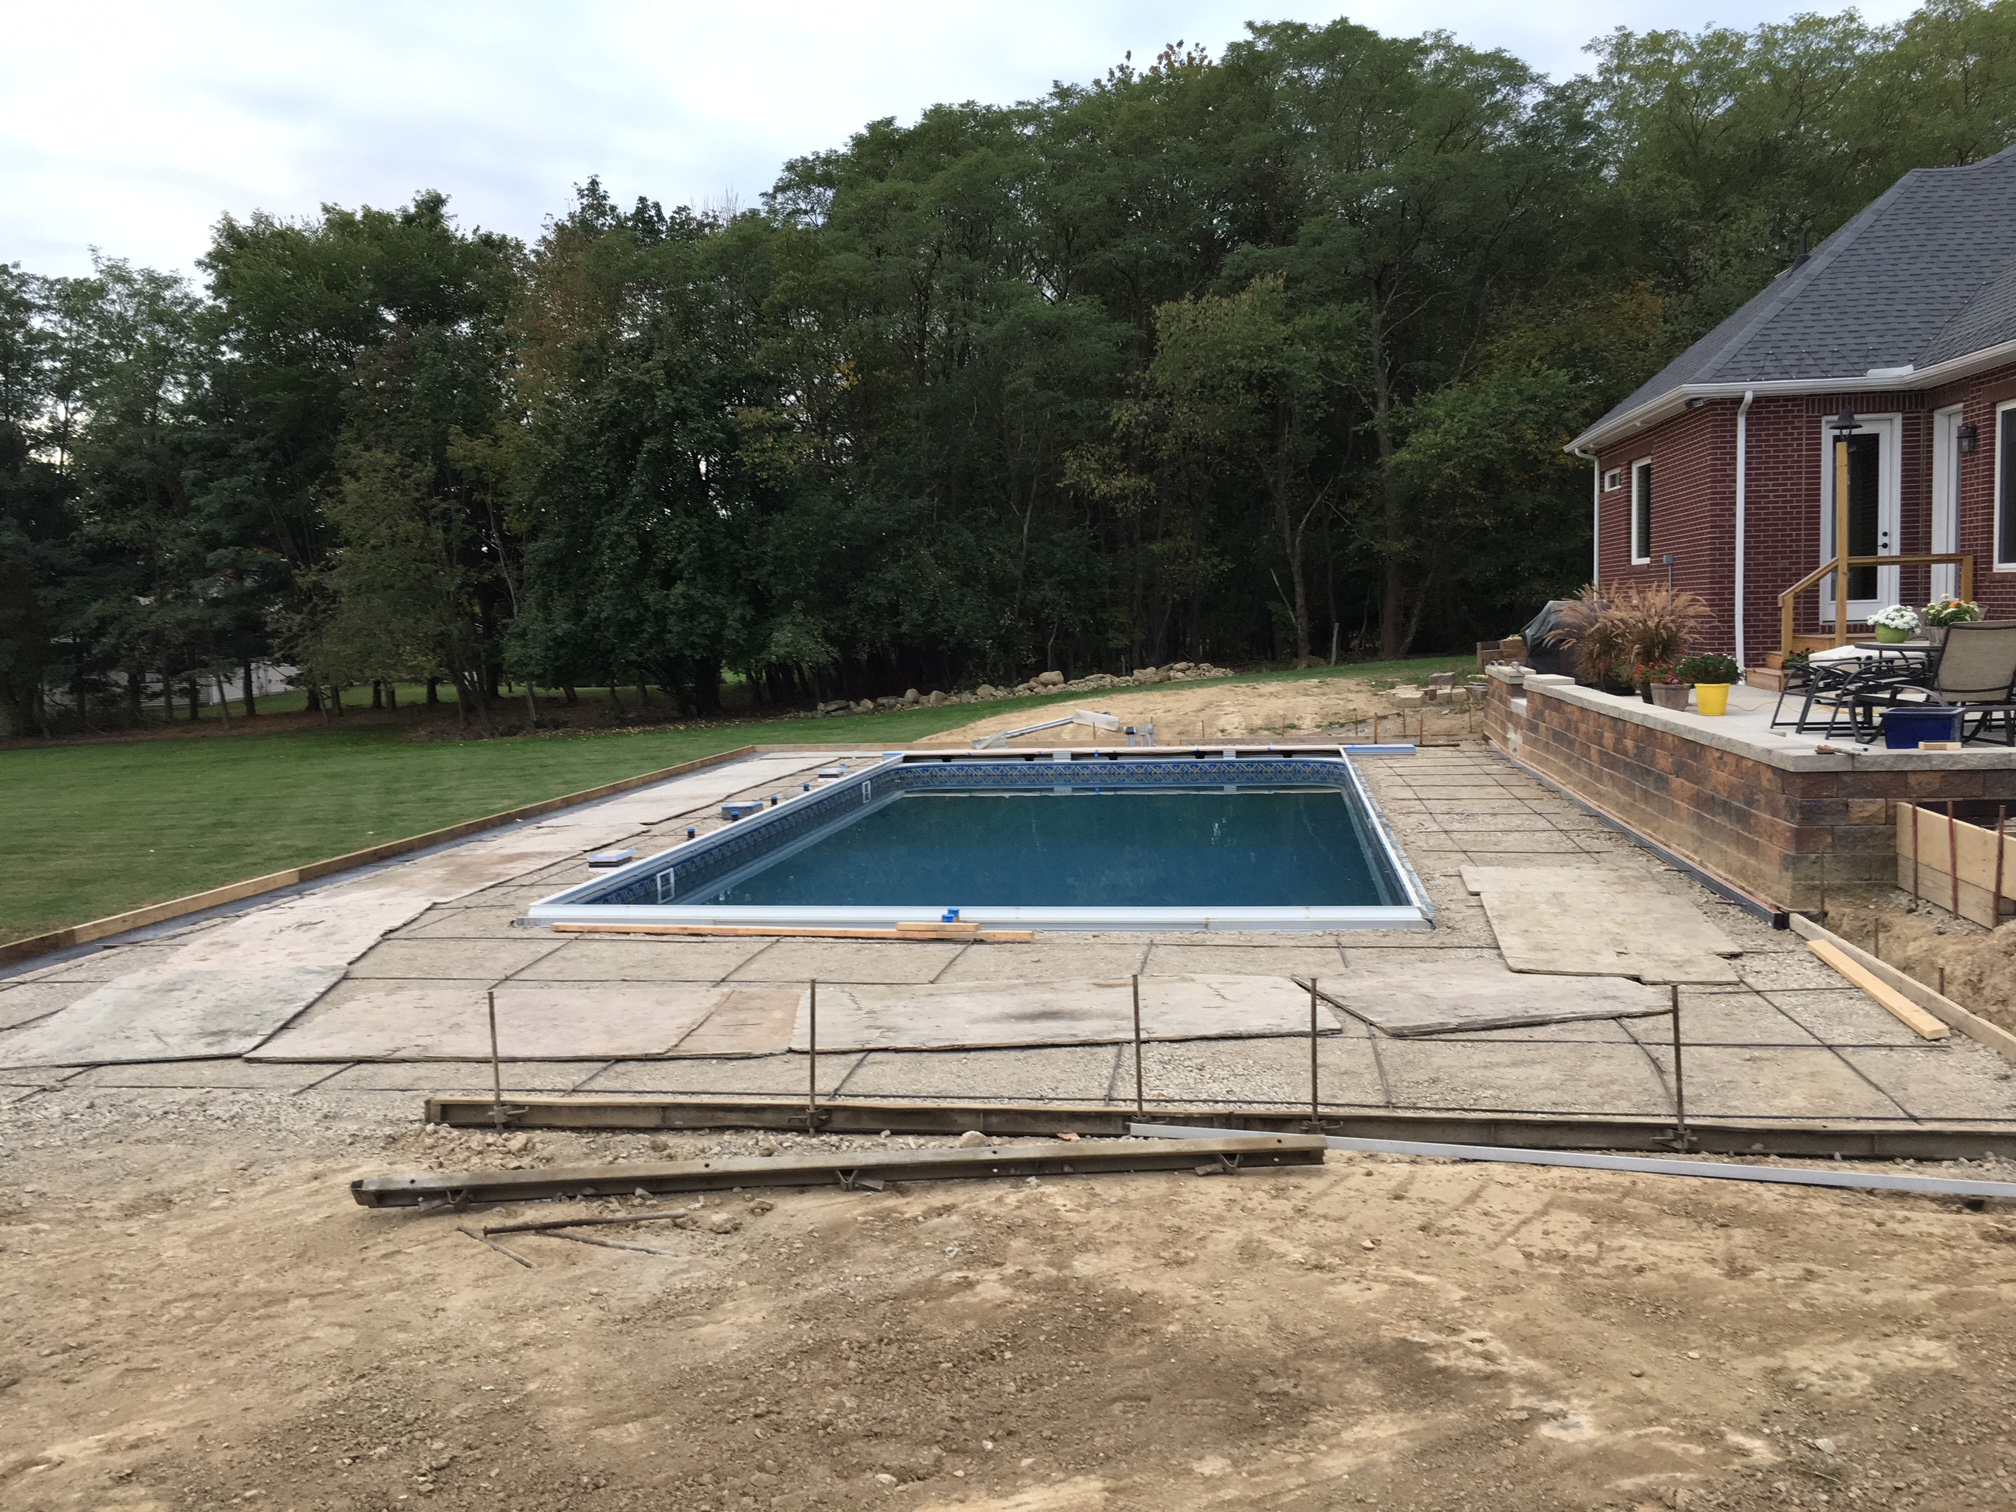 Concrete pool deck ready to pour